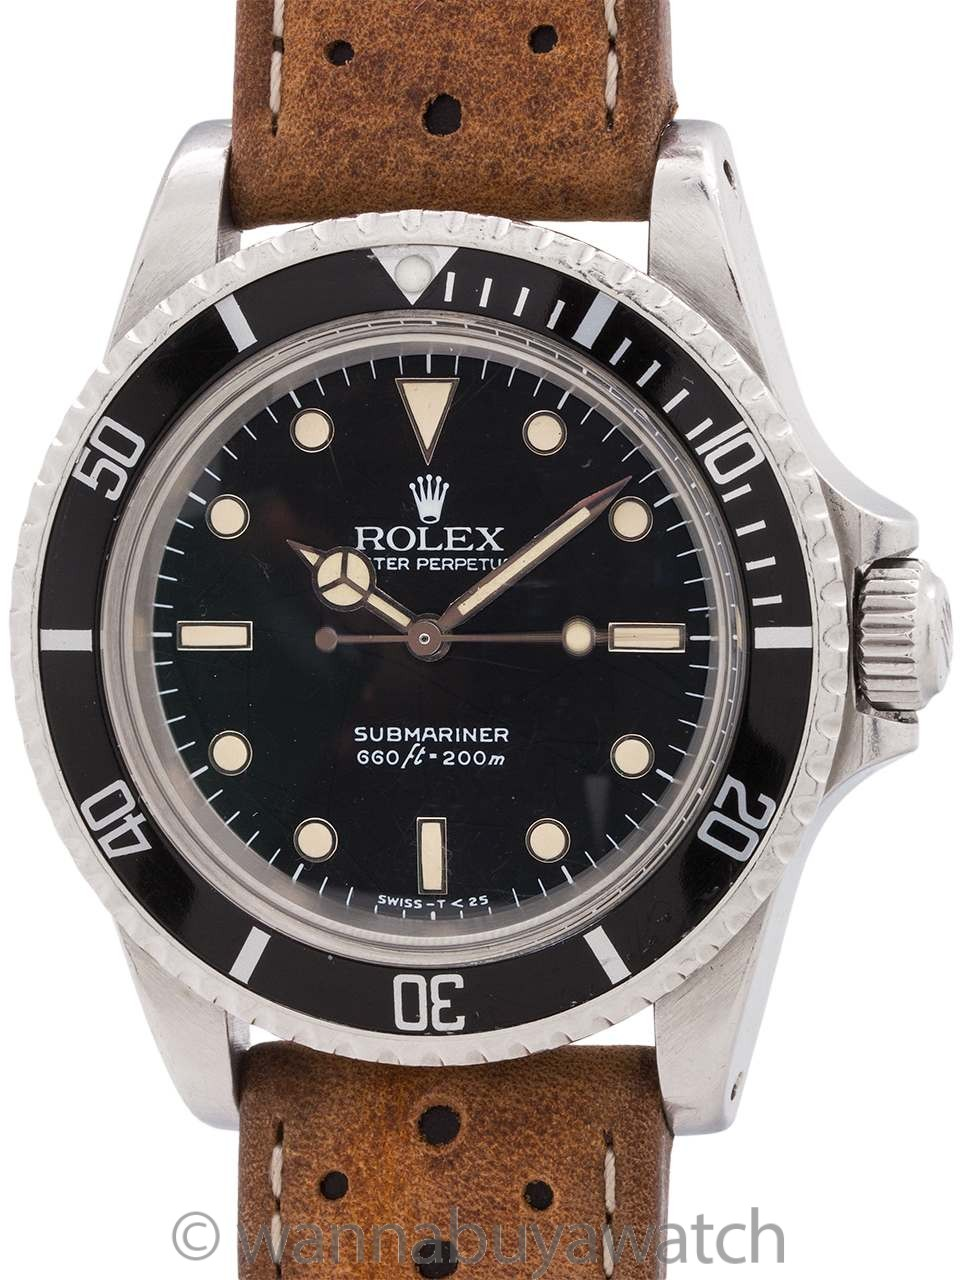 Rolex Submariner ref 5513 Tropical Spider Dial circa 1985